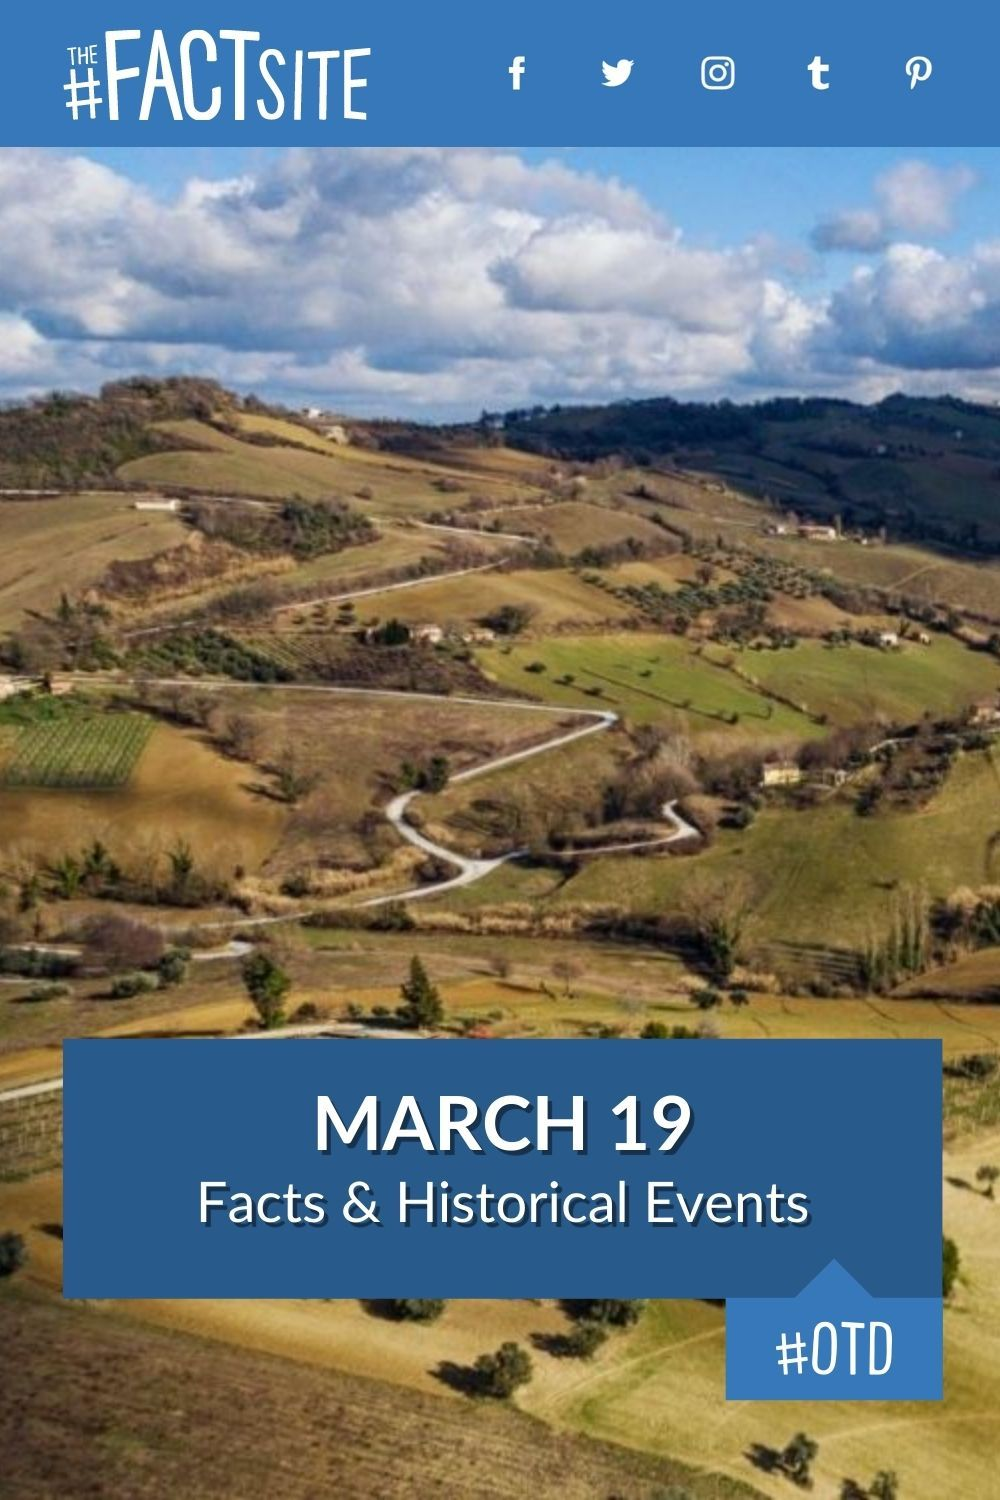 Facts & Historic Events That Happened on March 19